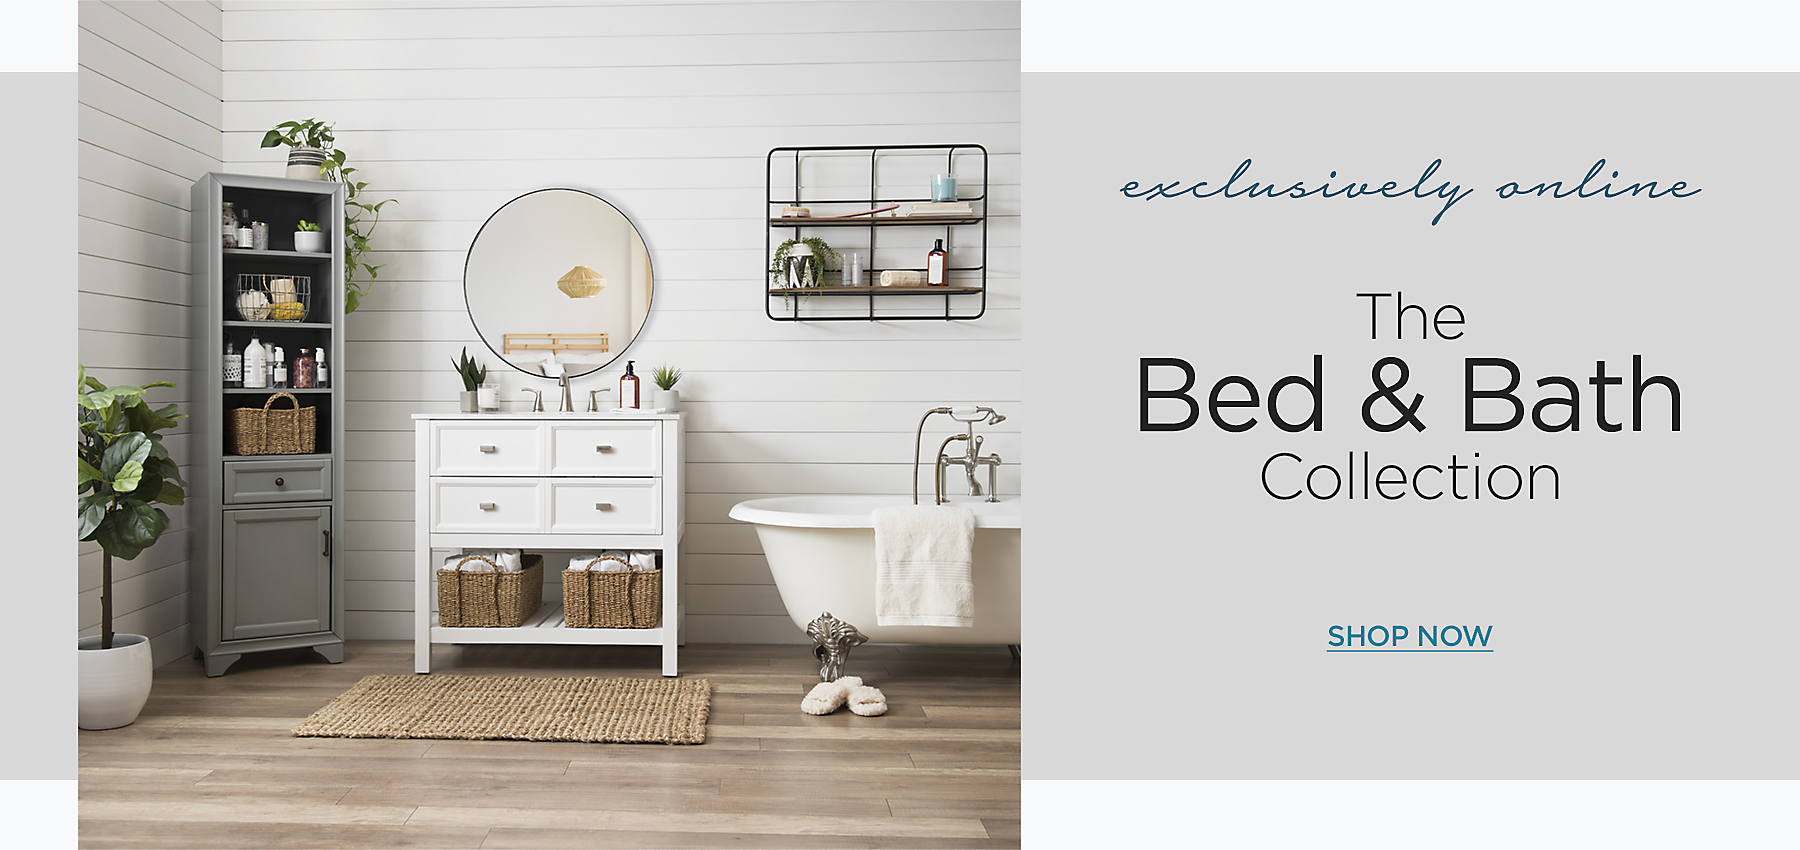 Exclusively Online - Shop the Bed & Bath Collection